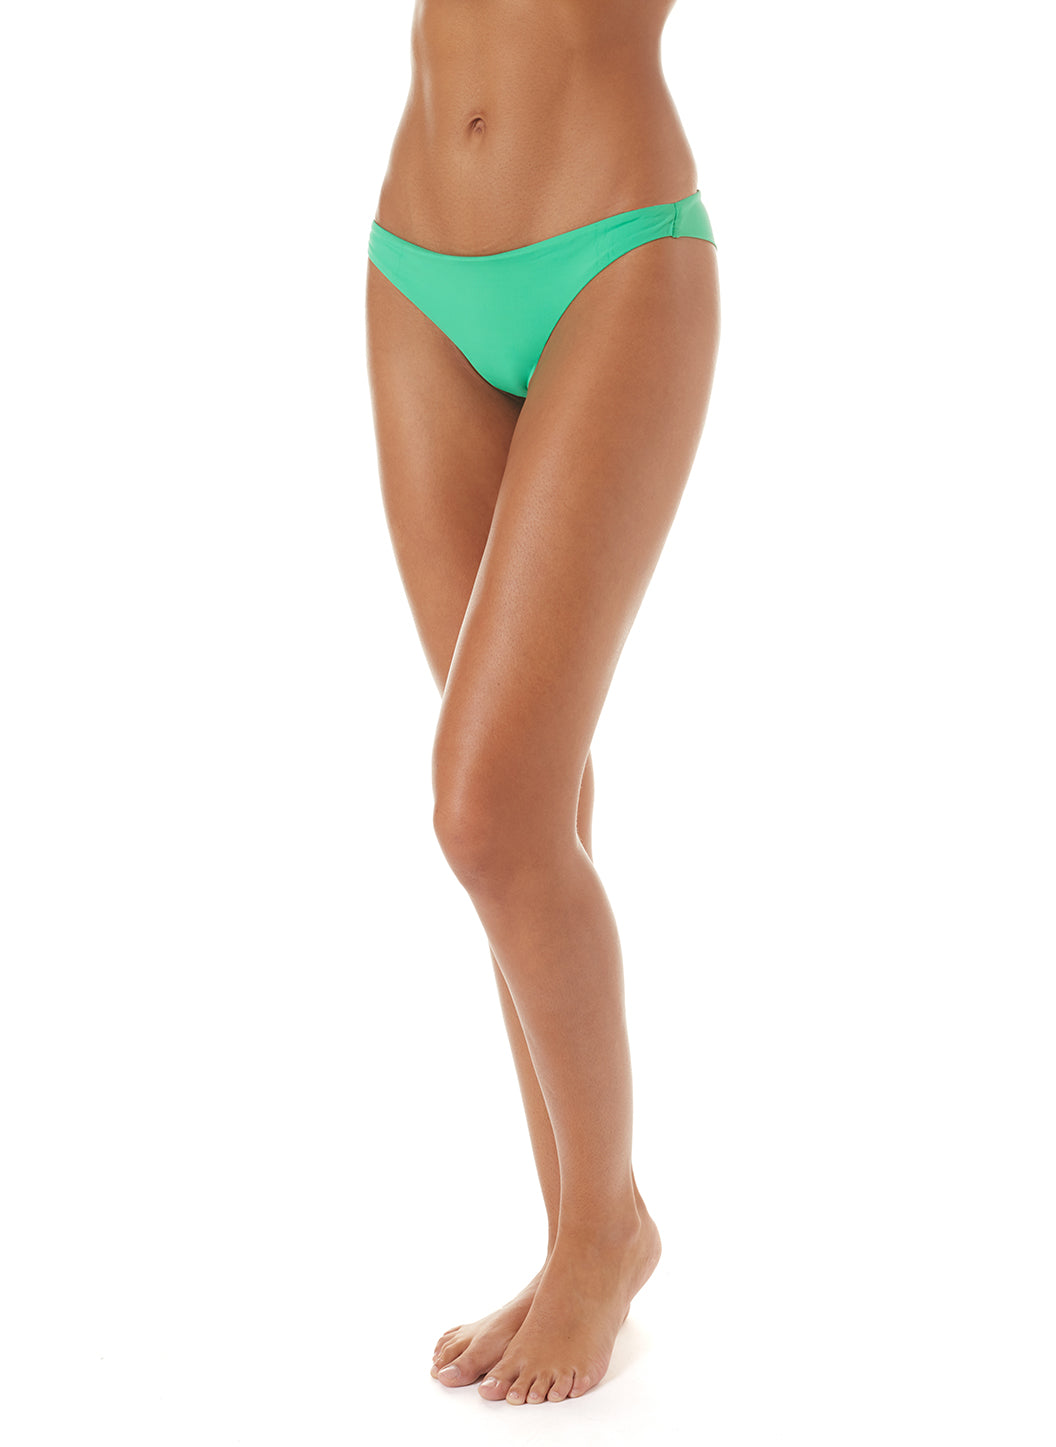 Exclusive Sisi Green Small Bikini Bottoms